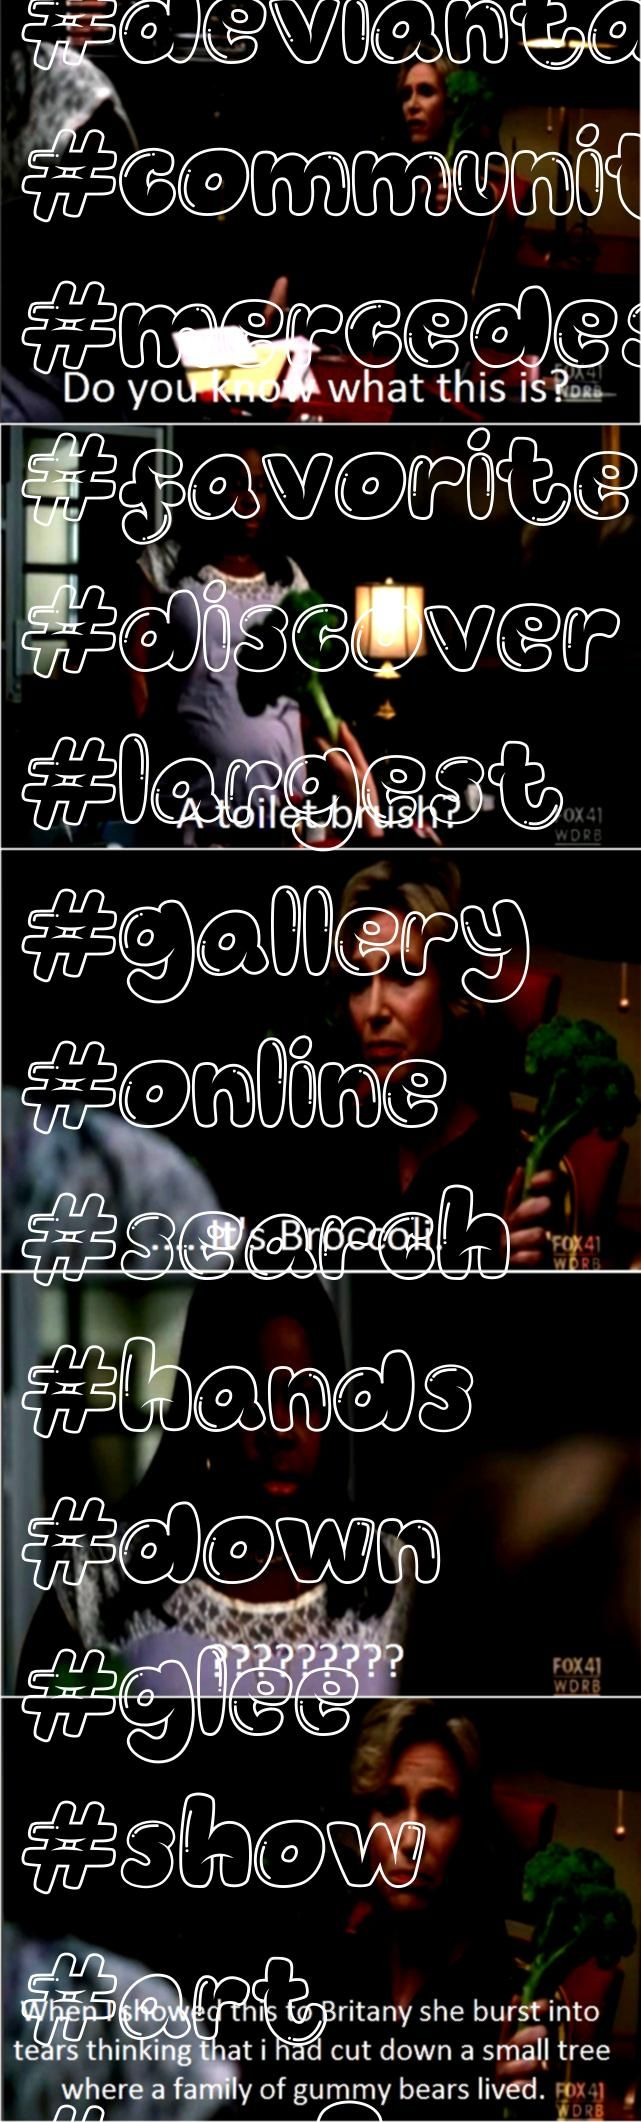 Glee on DeviantArt  Discover The Largest Online Art Gallery and Community  Glee Sue and Mercedes Hands down my favorite show Search Glee on DeviantArt  Discover The Large...